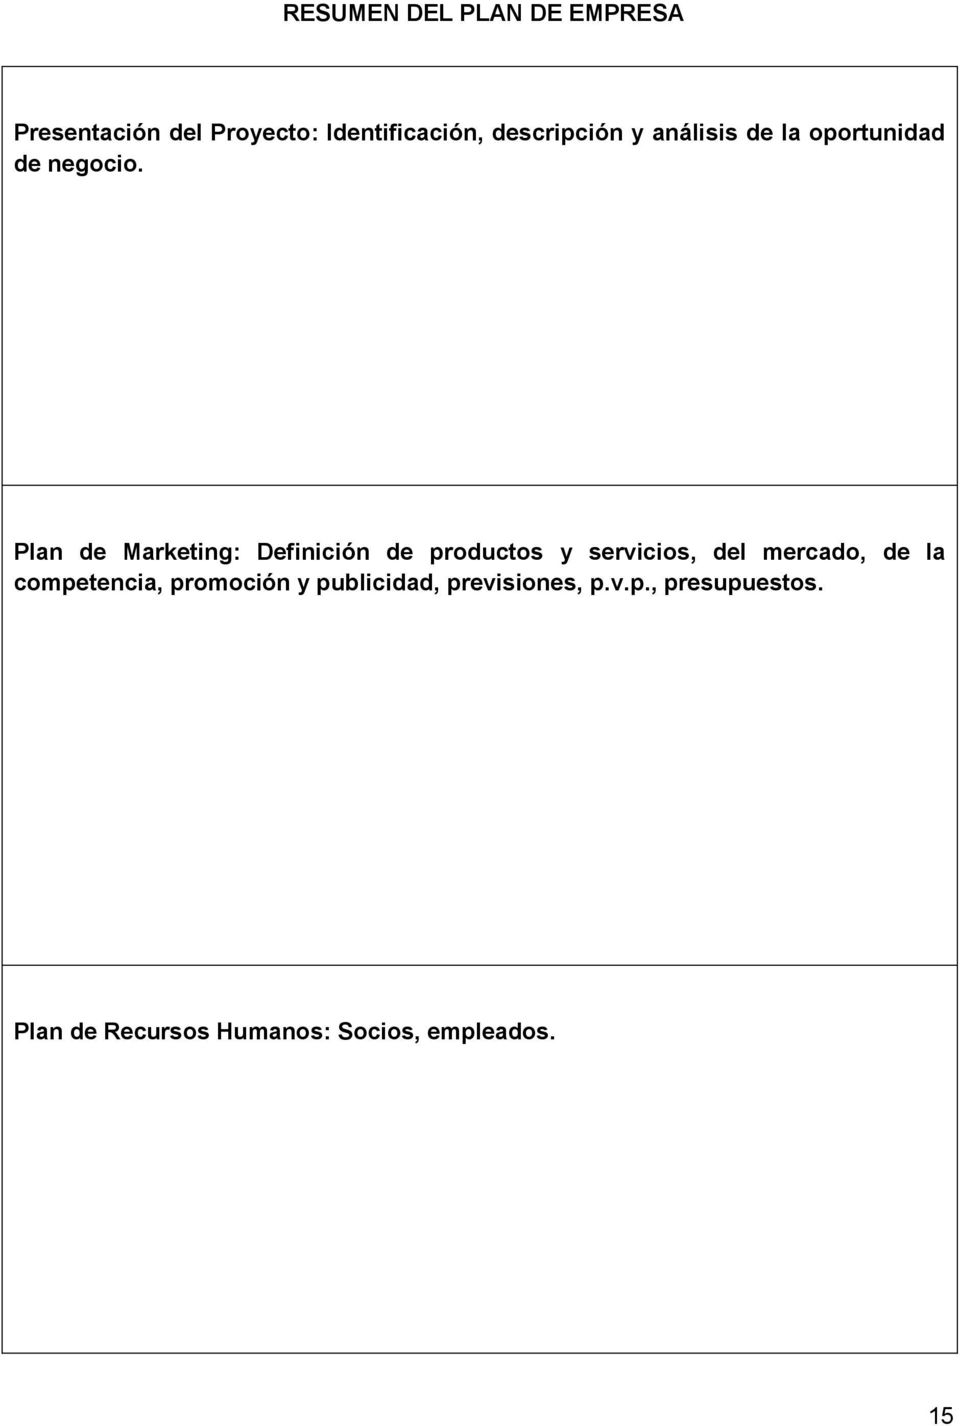 Plan de Marketing: Definición de productos y servicios, del mercado, de la